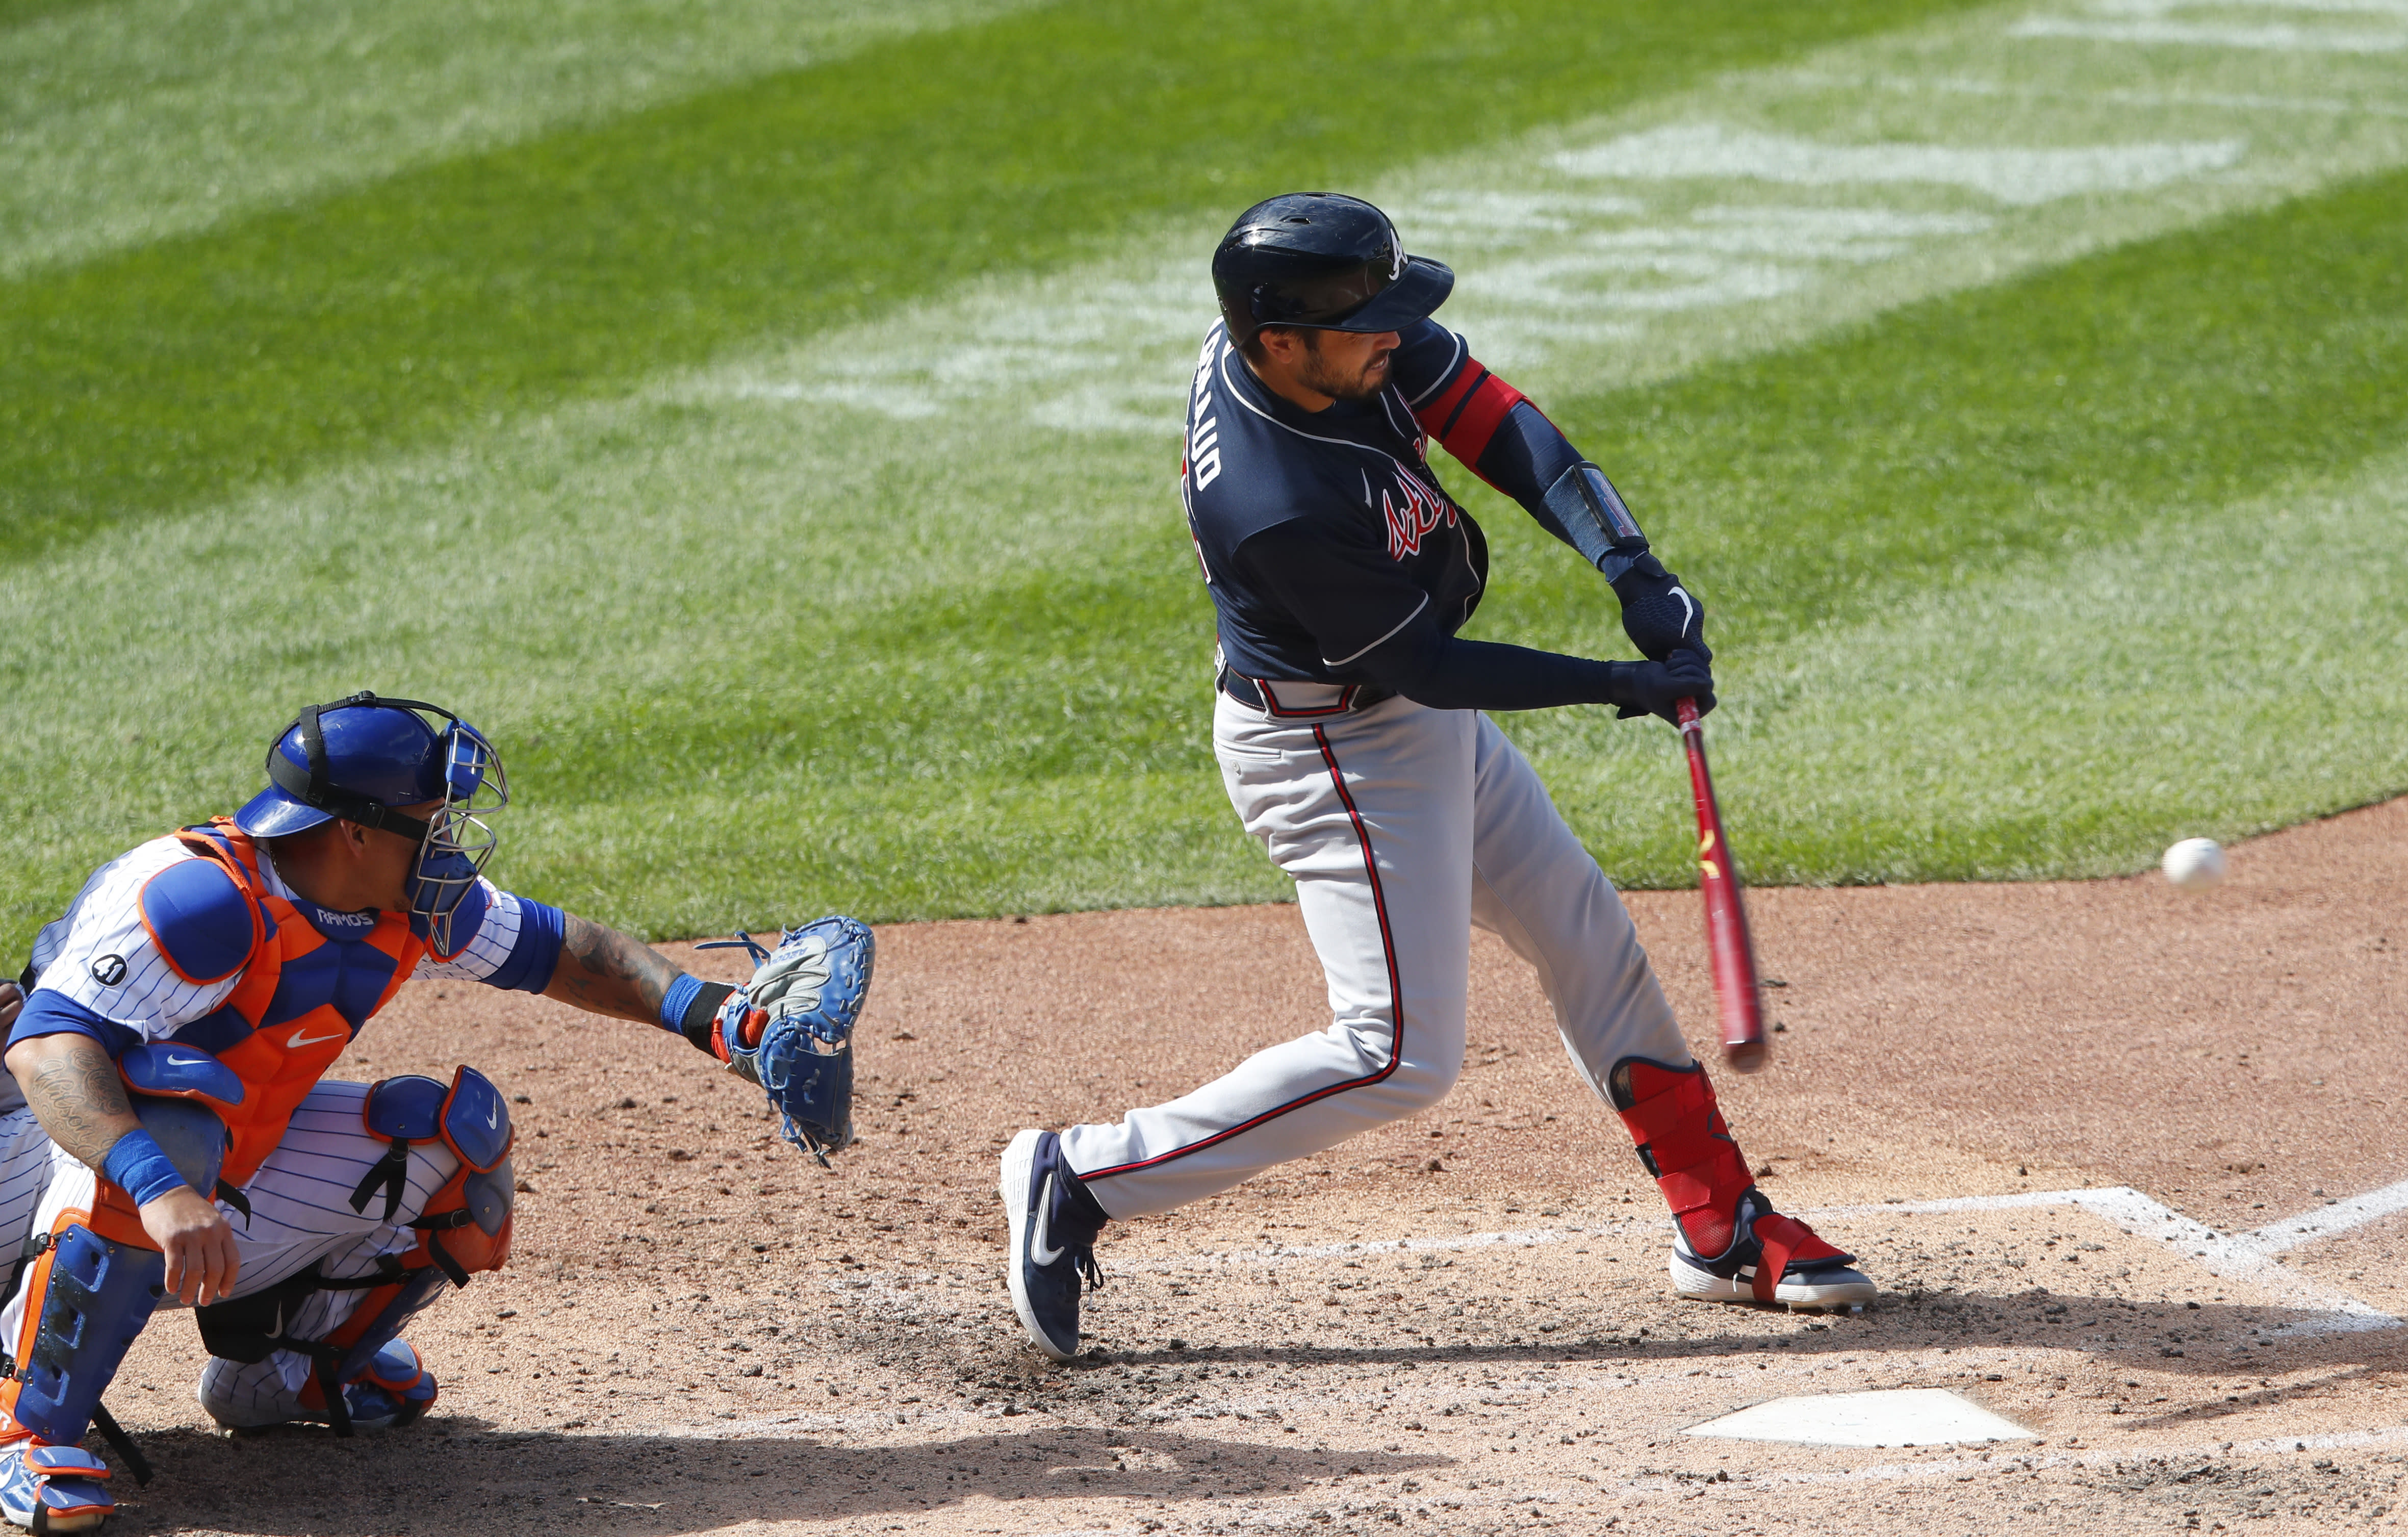 Atlanta Braves' Travis d'Arnaud, right, hits a double against the New York Mets during the sixth inning of a baseball game, Sunday, Sept. 20, 2020, in New York. (AP Photo/Noah K. Murray)